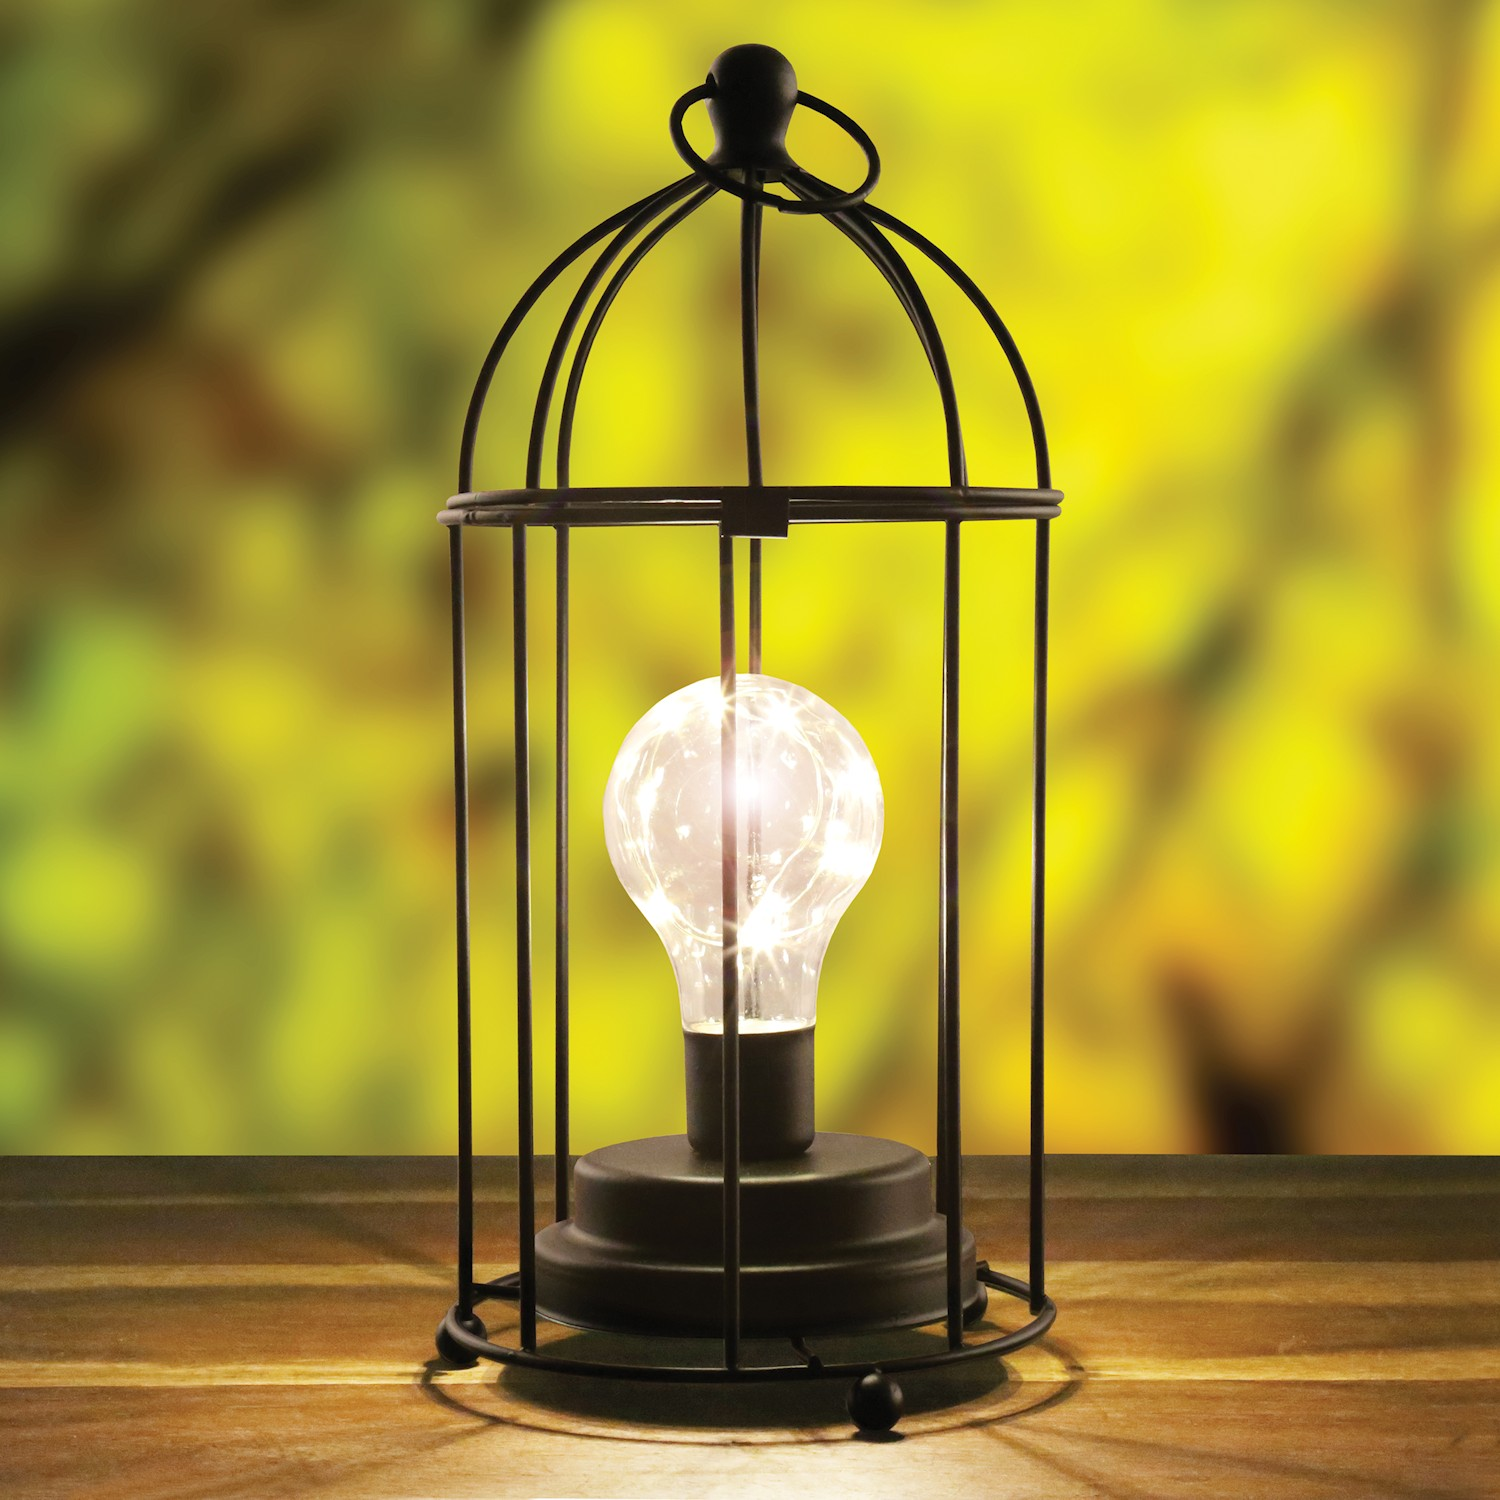 Circleware Black Metal Lamp Cordless Accent Light With